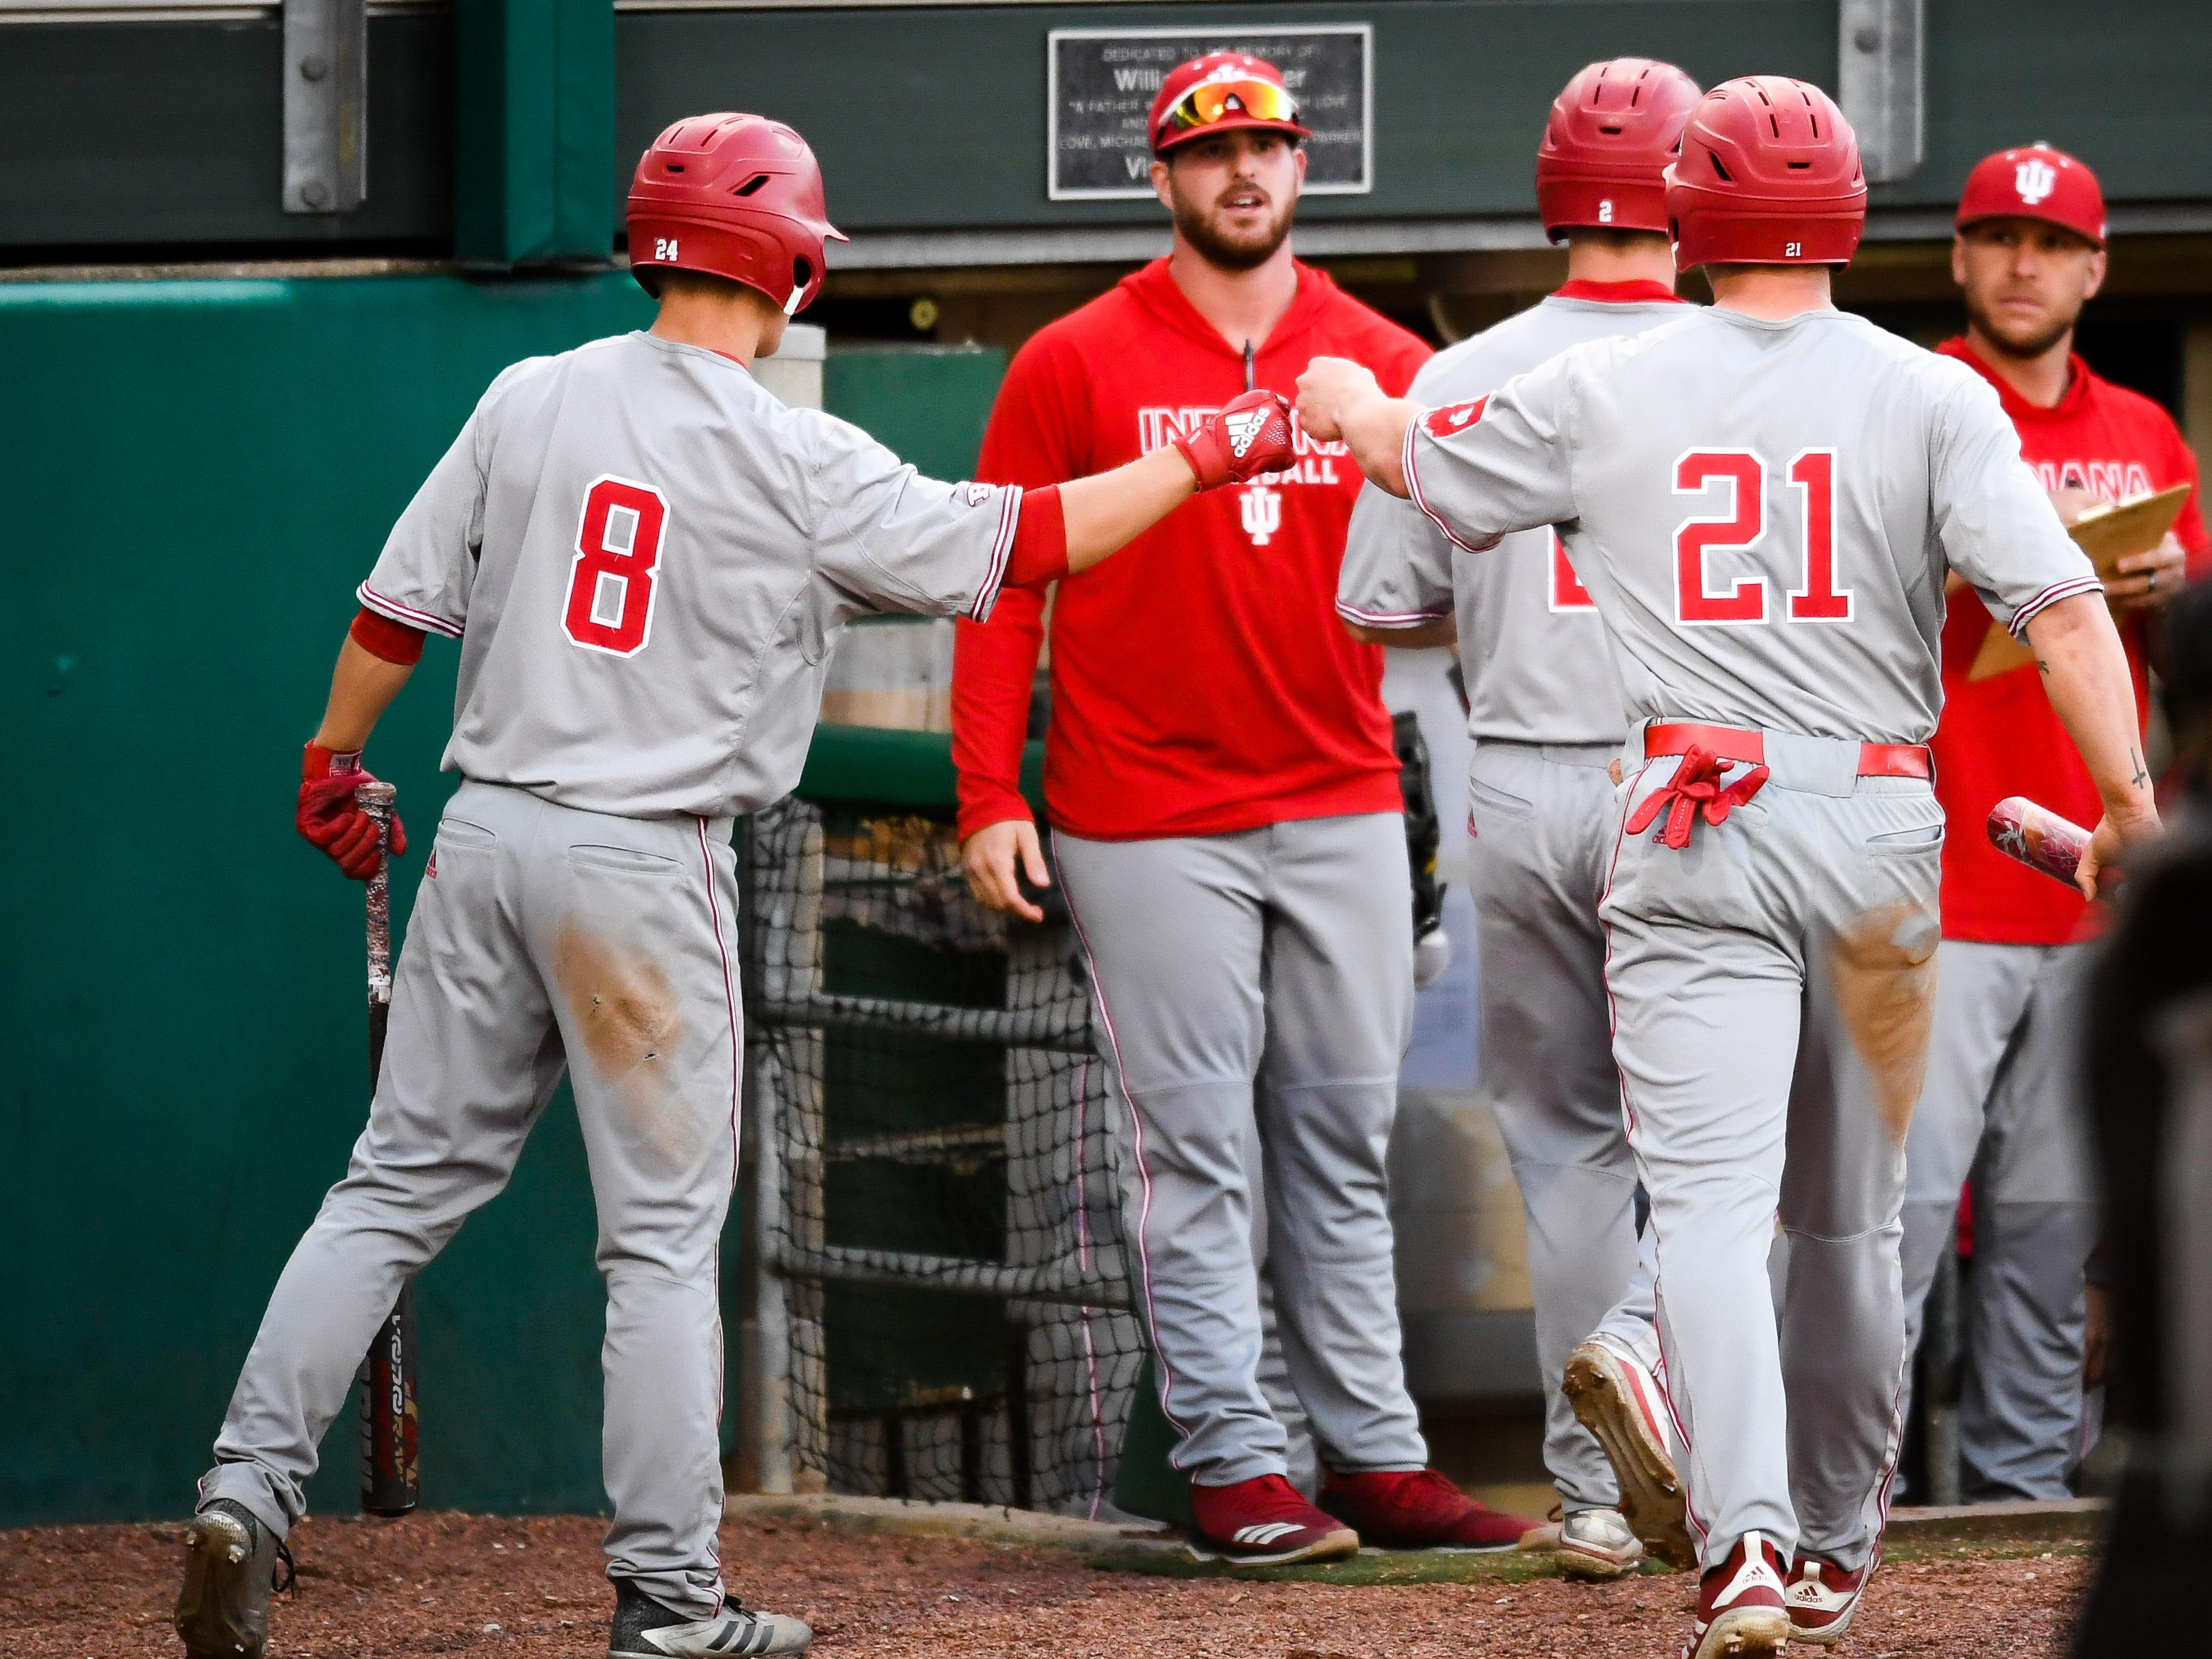 'Cut from the same cloth': Former SIAC standouts are key cogs in lineup for IU baseball